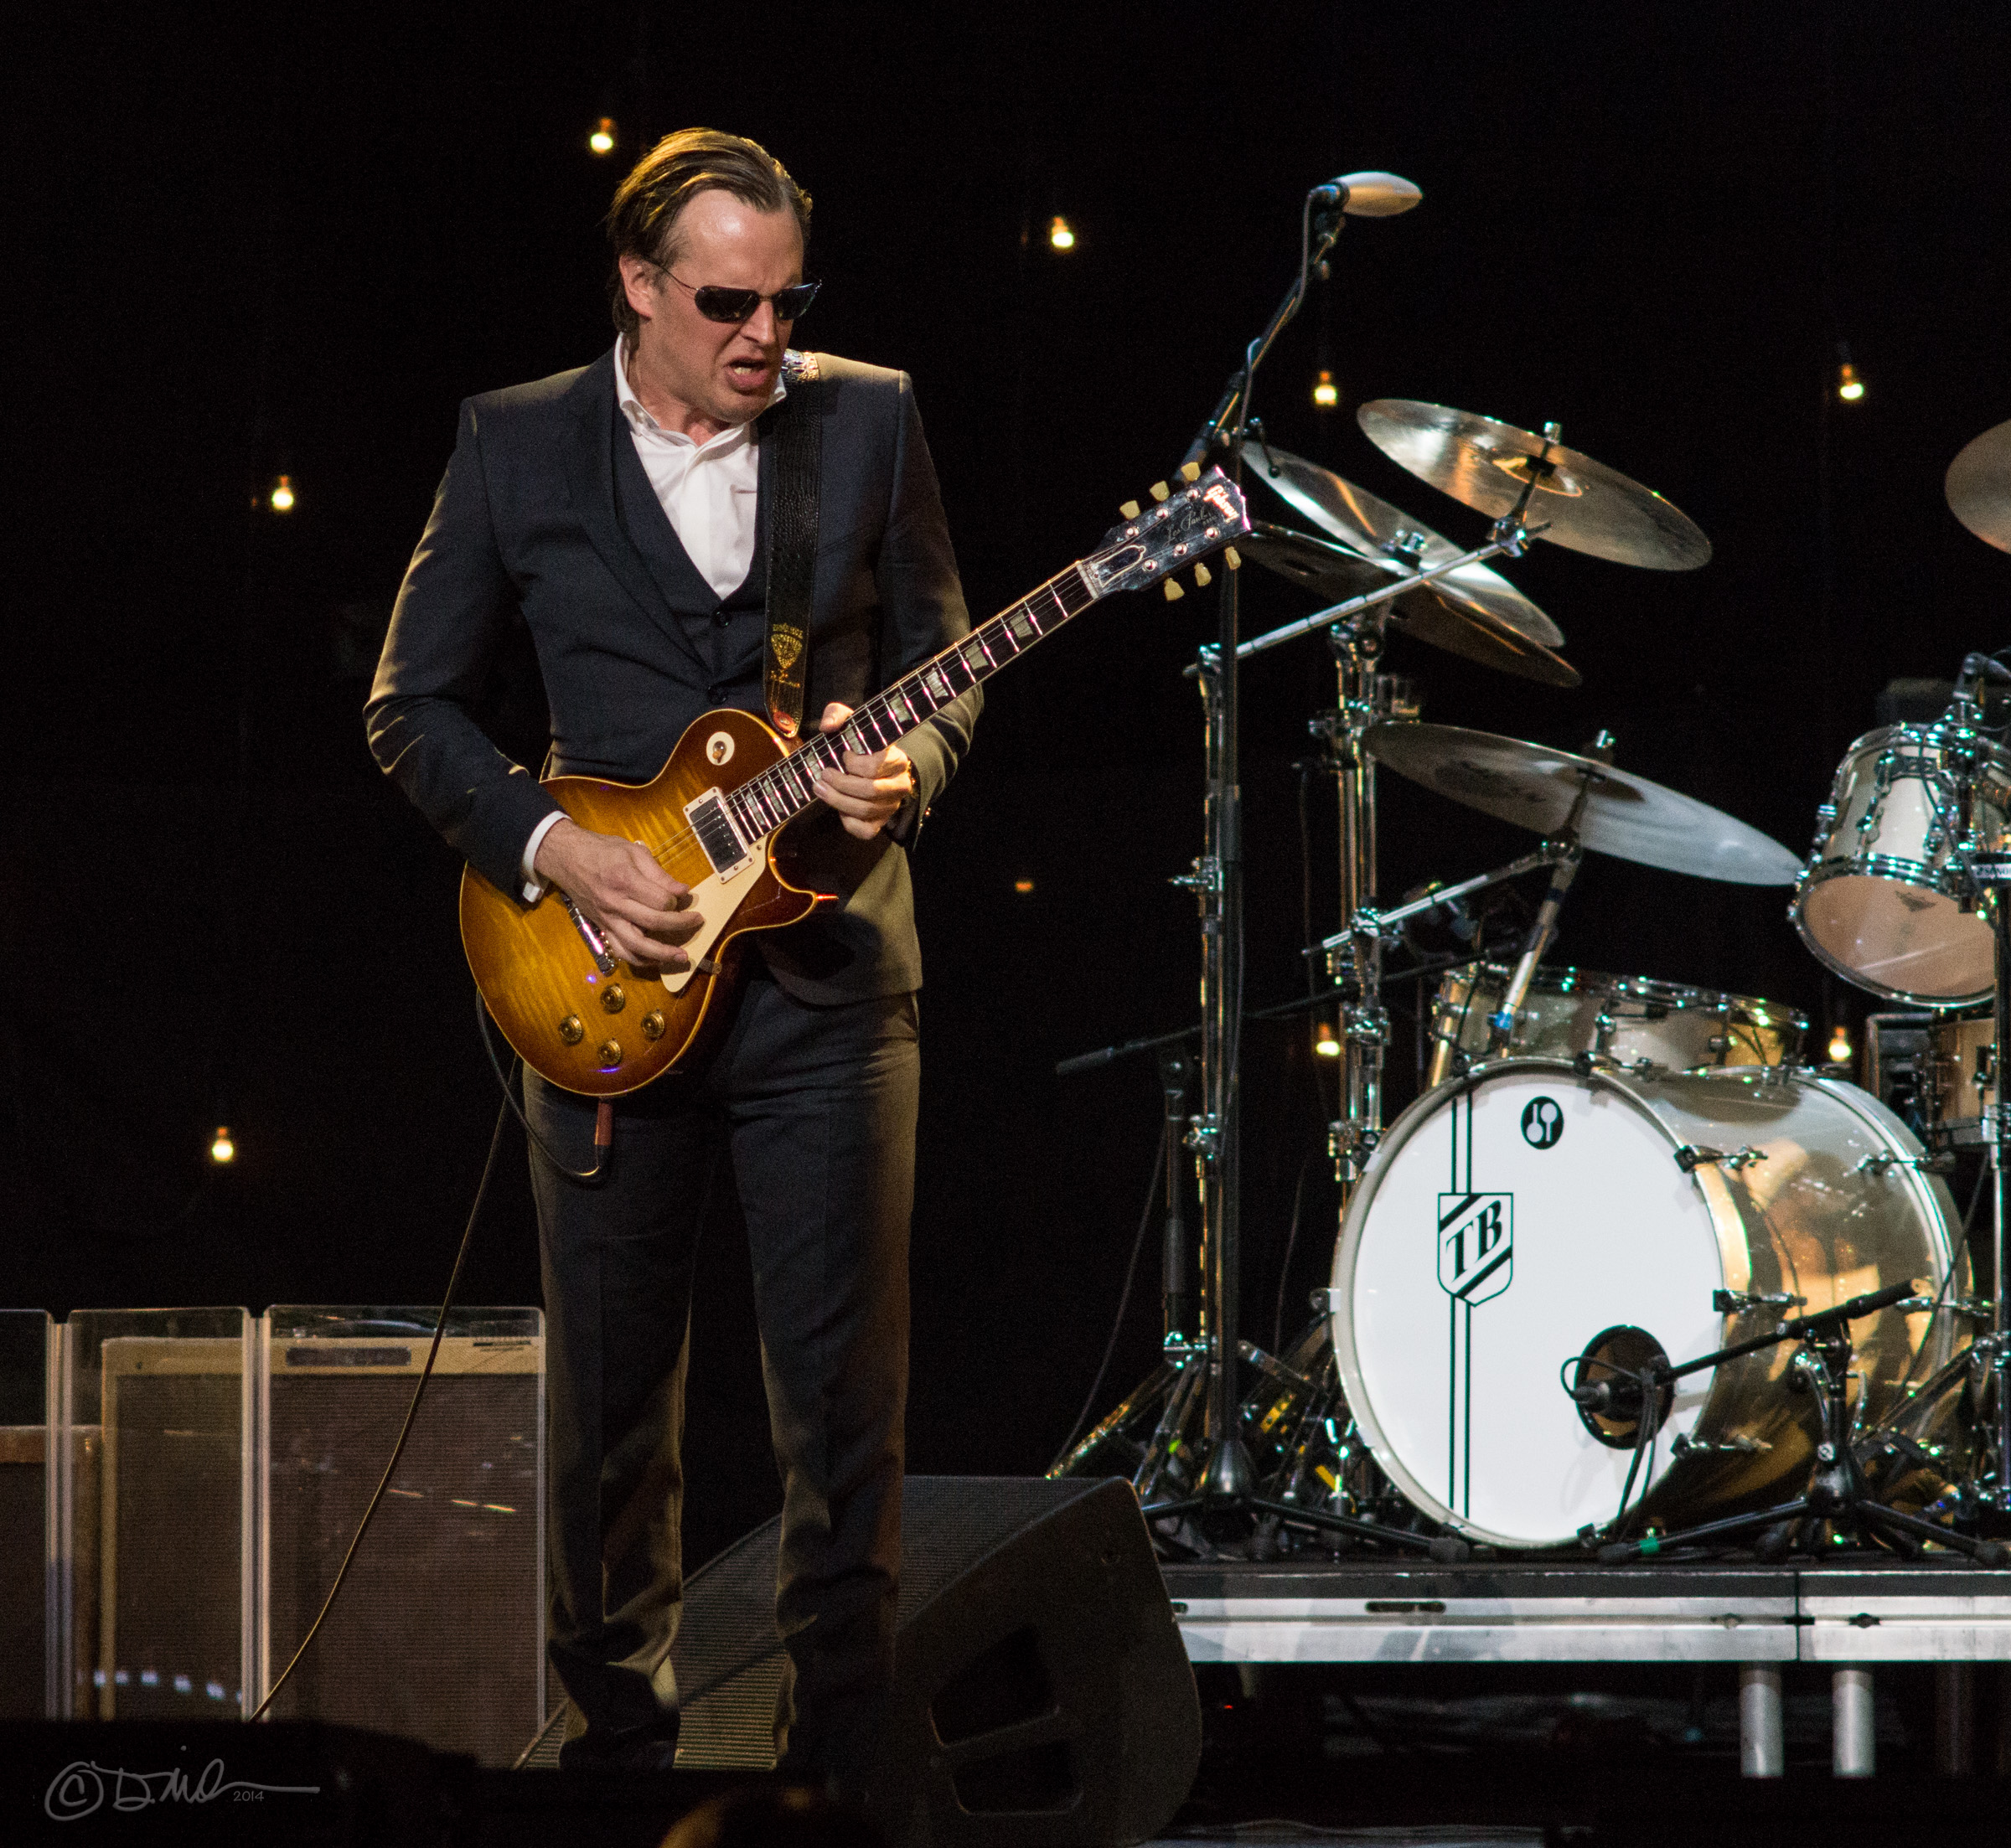 Joe Bonamassa Announces New Studio Album 'Royal Tea' Inspired by Jeff Beck, Led Zeppelin, John Mayall, Eric Clapton, and Cream – Available October 23